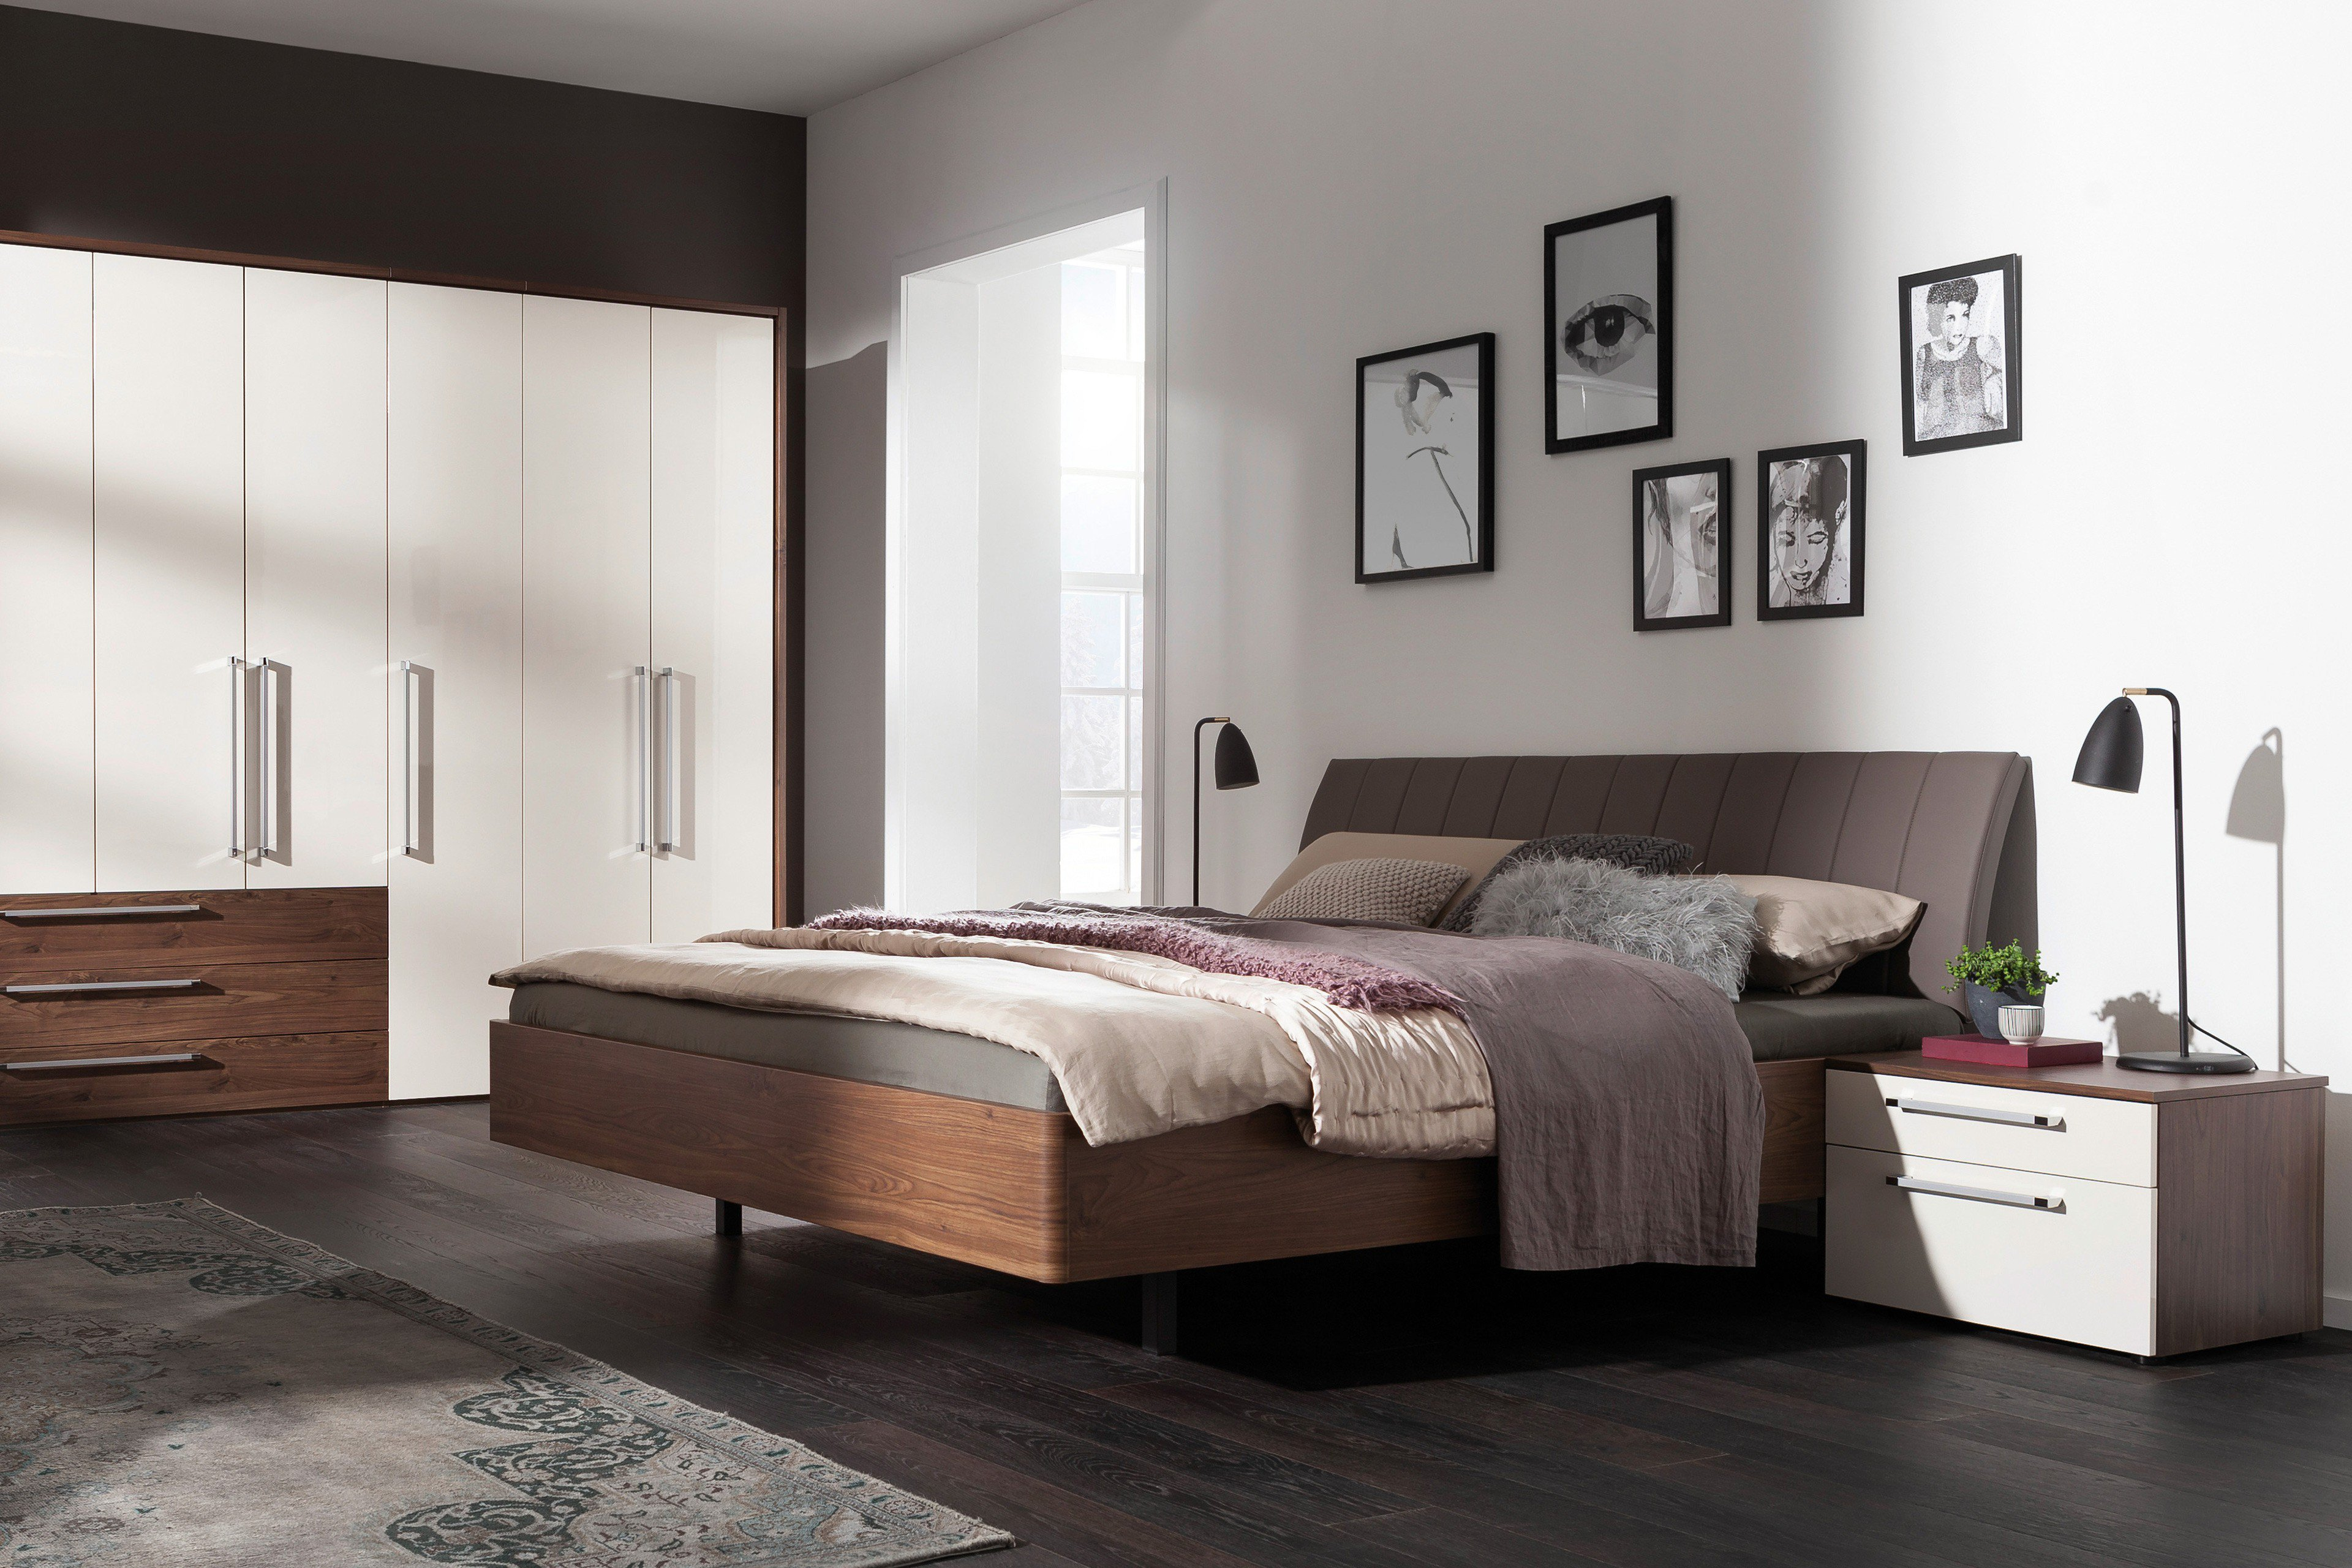 nolte m bel bett sonyo nussbaum samtbraun m bel letz ihr online shop. Black Bedroom Furniture Sets. Home Design Ideas